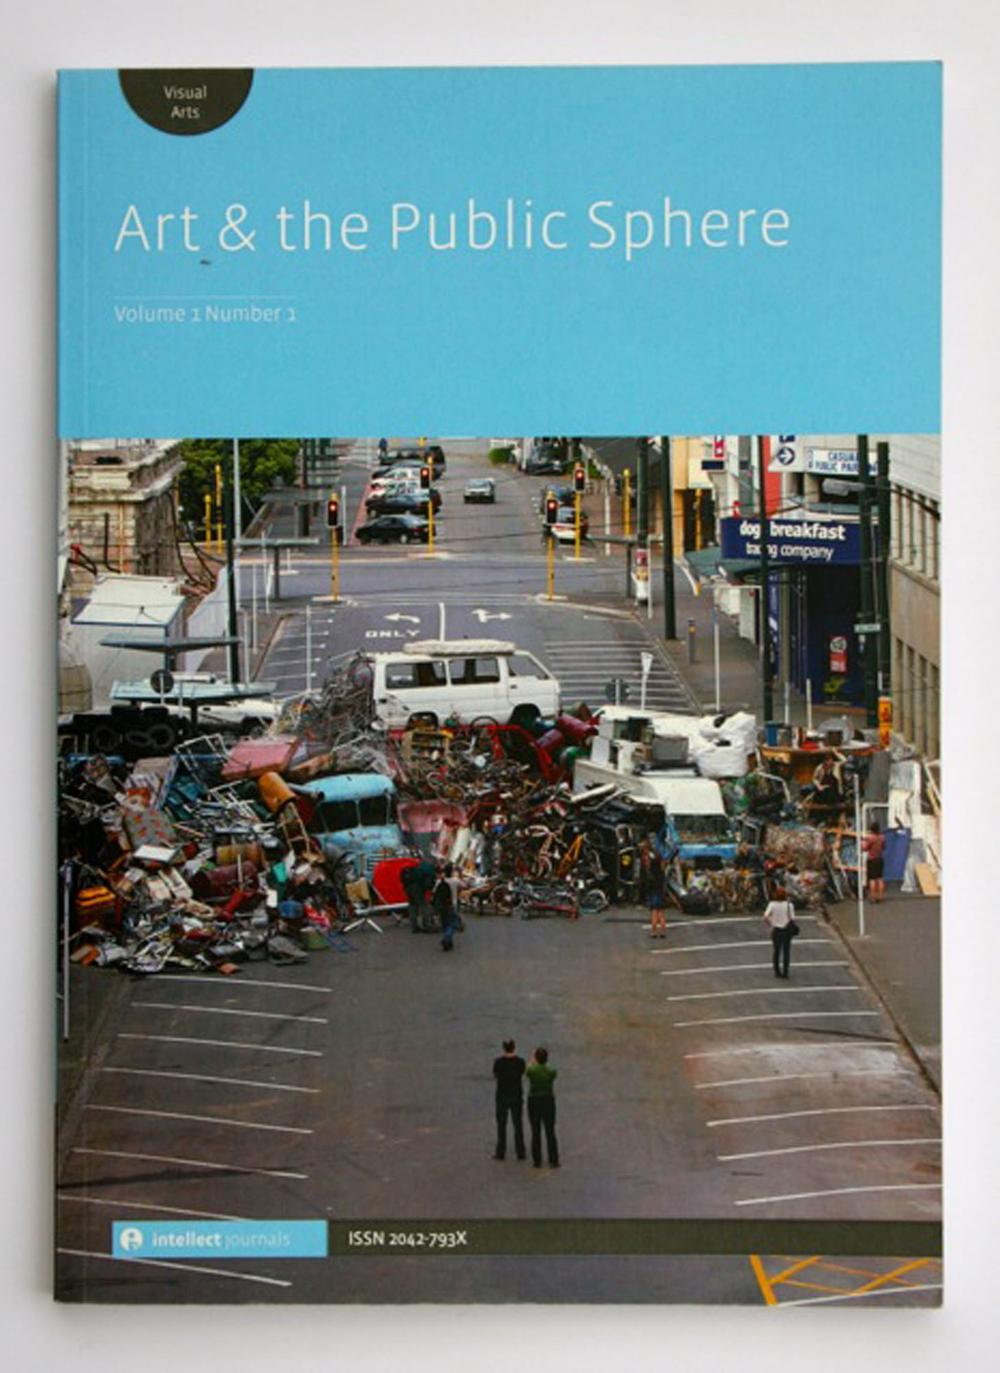 Art and the Public Sphere Journal